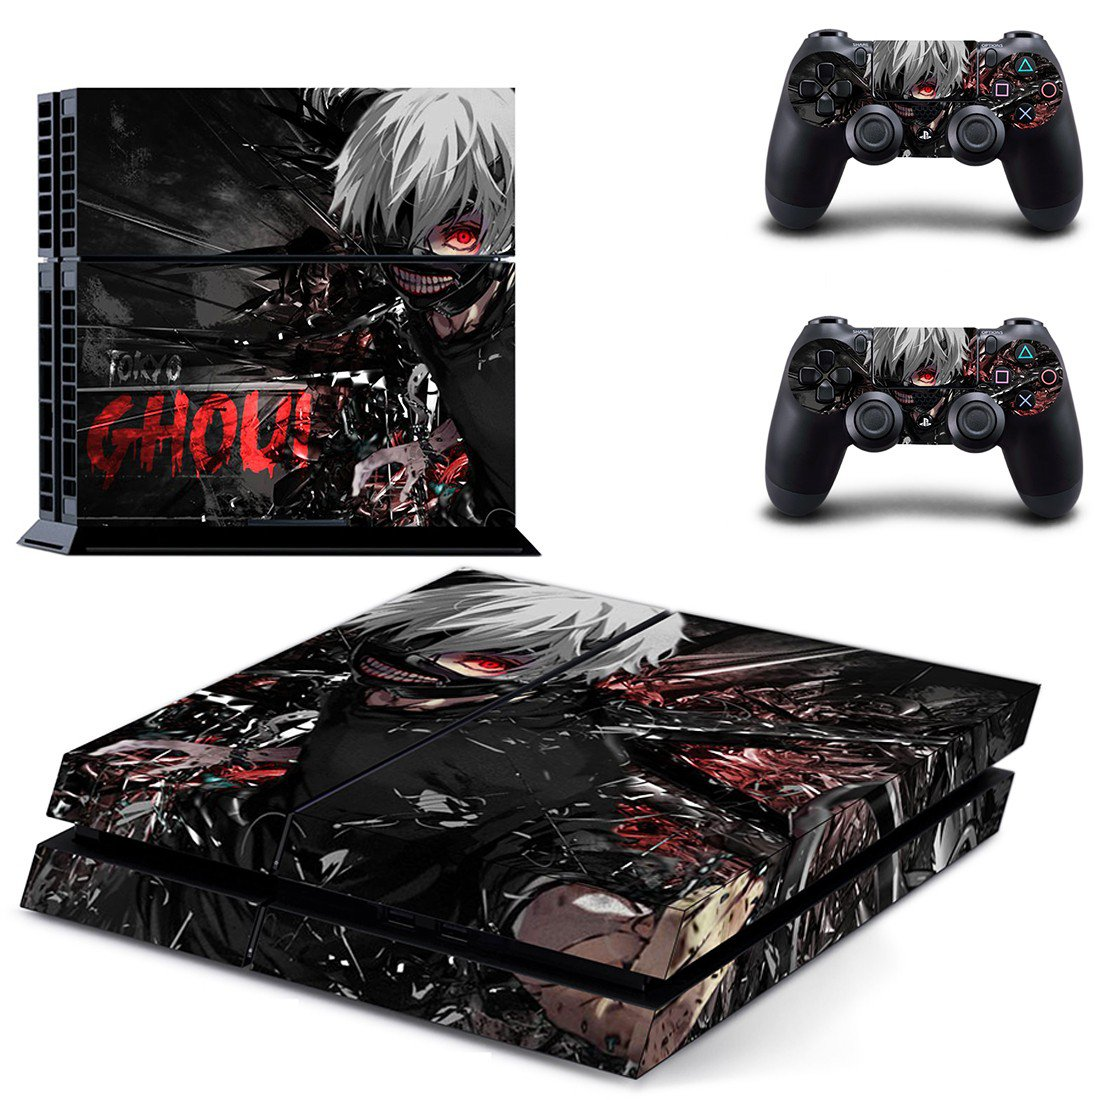 Tokyo ghoul design decal for PS4 console skin sticker decal-design